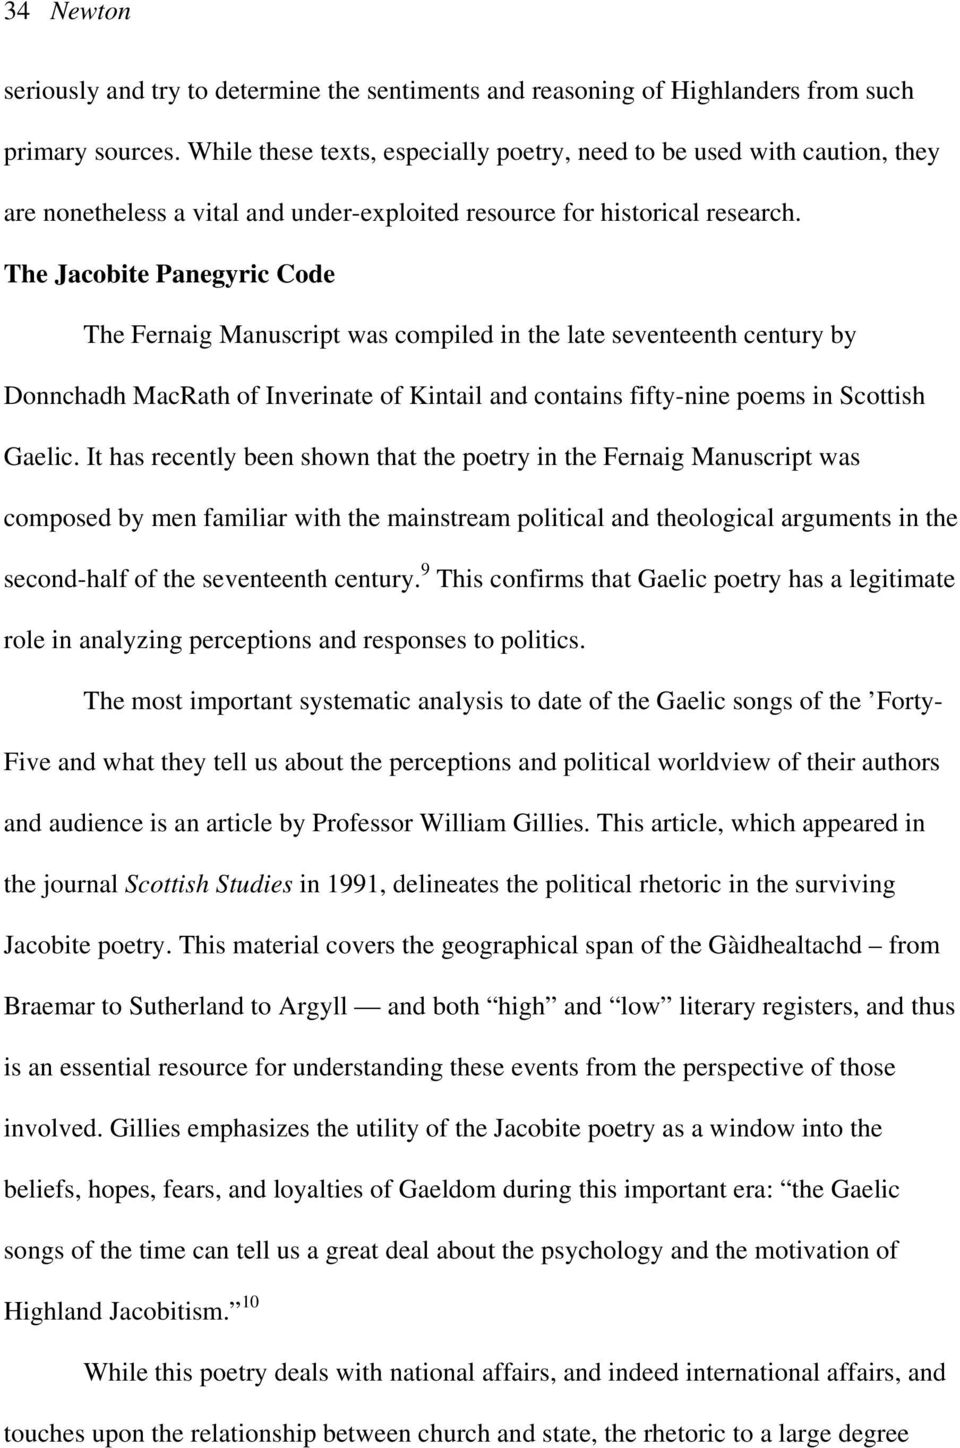 The Jacobite Panegyric Code The Fernaig Manuscript was compiled in the late seventeenth century by Donnchadh MacRath of Inverinate of Kintail and contains fifty-nine poems in Scottish Gaelic.